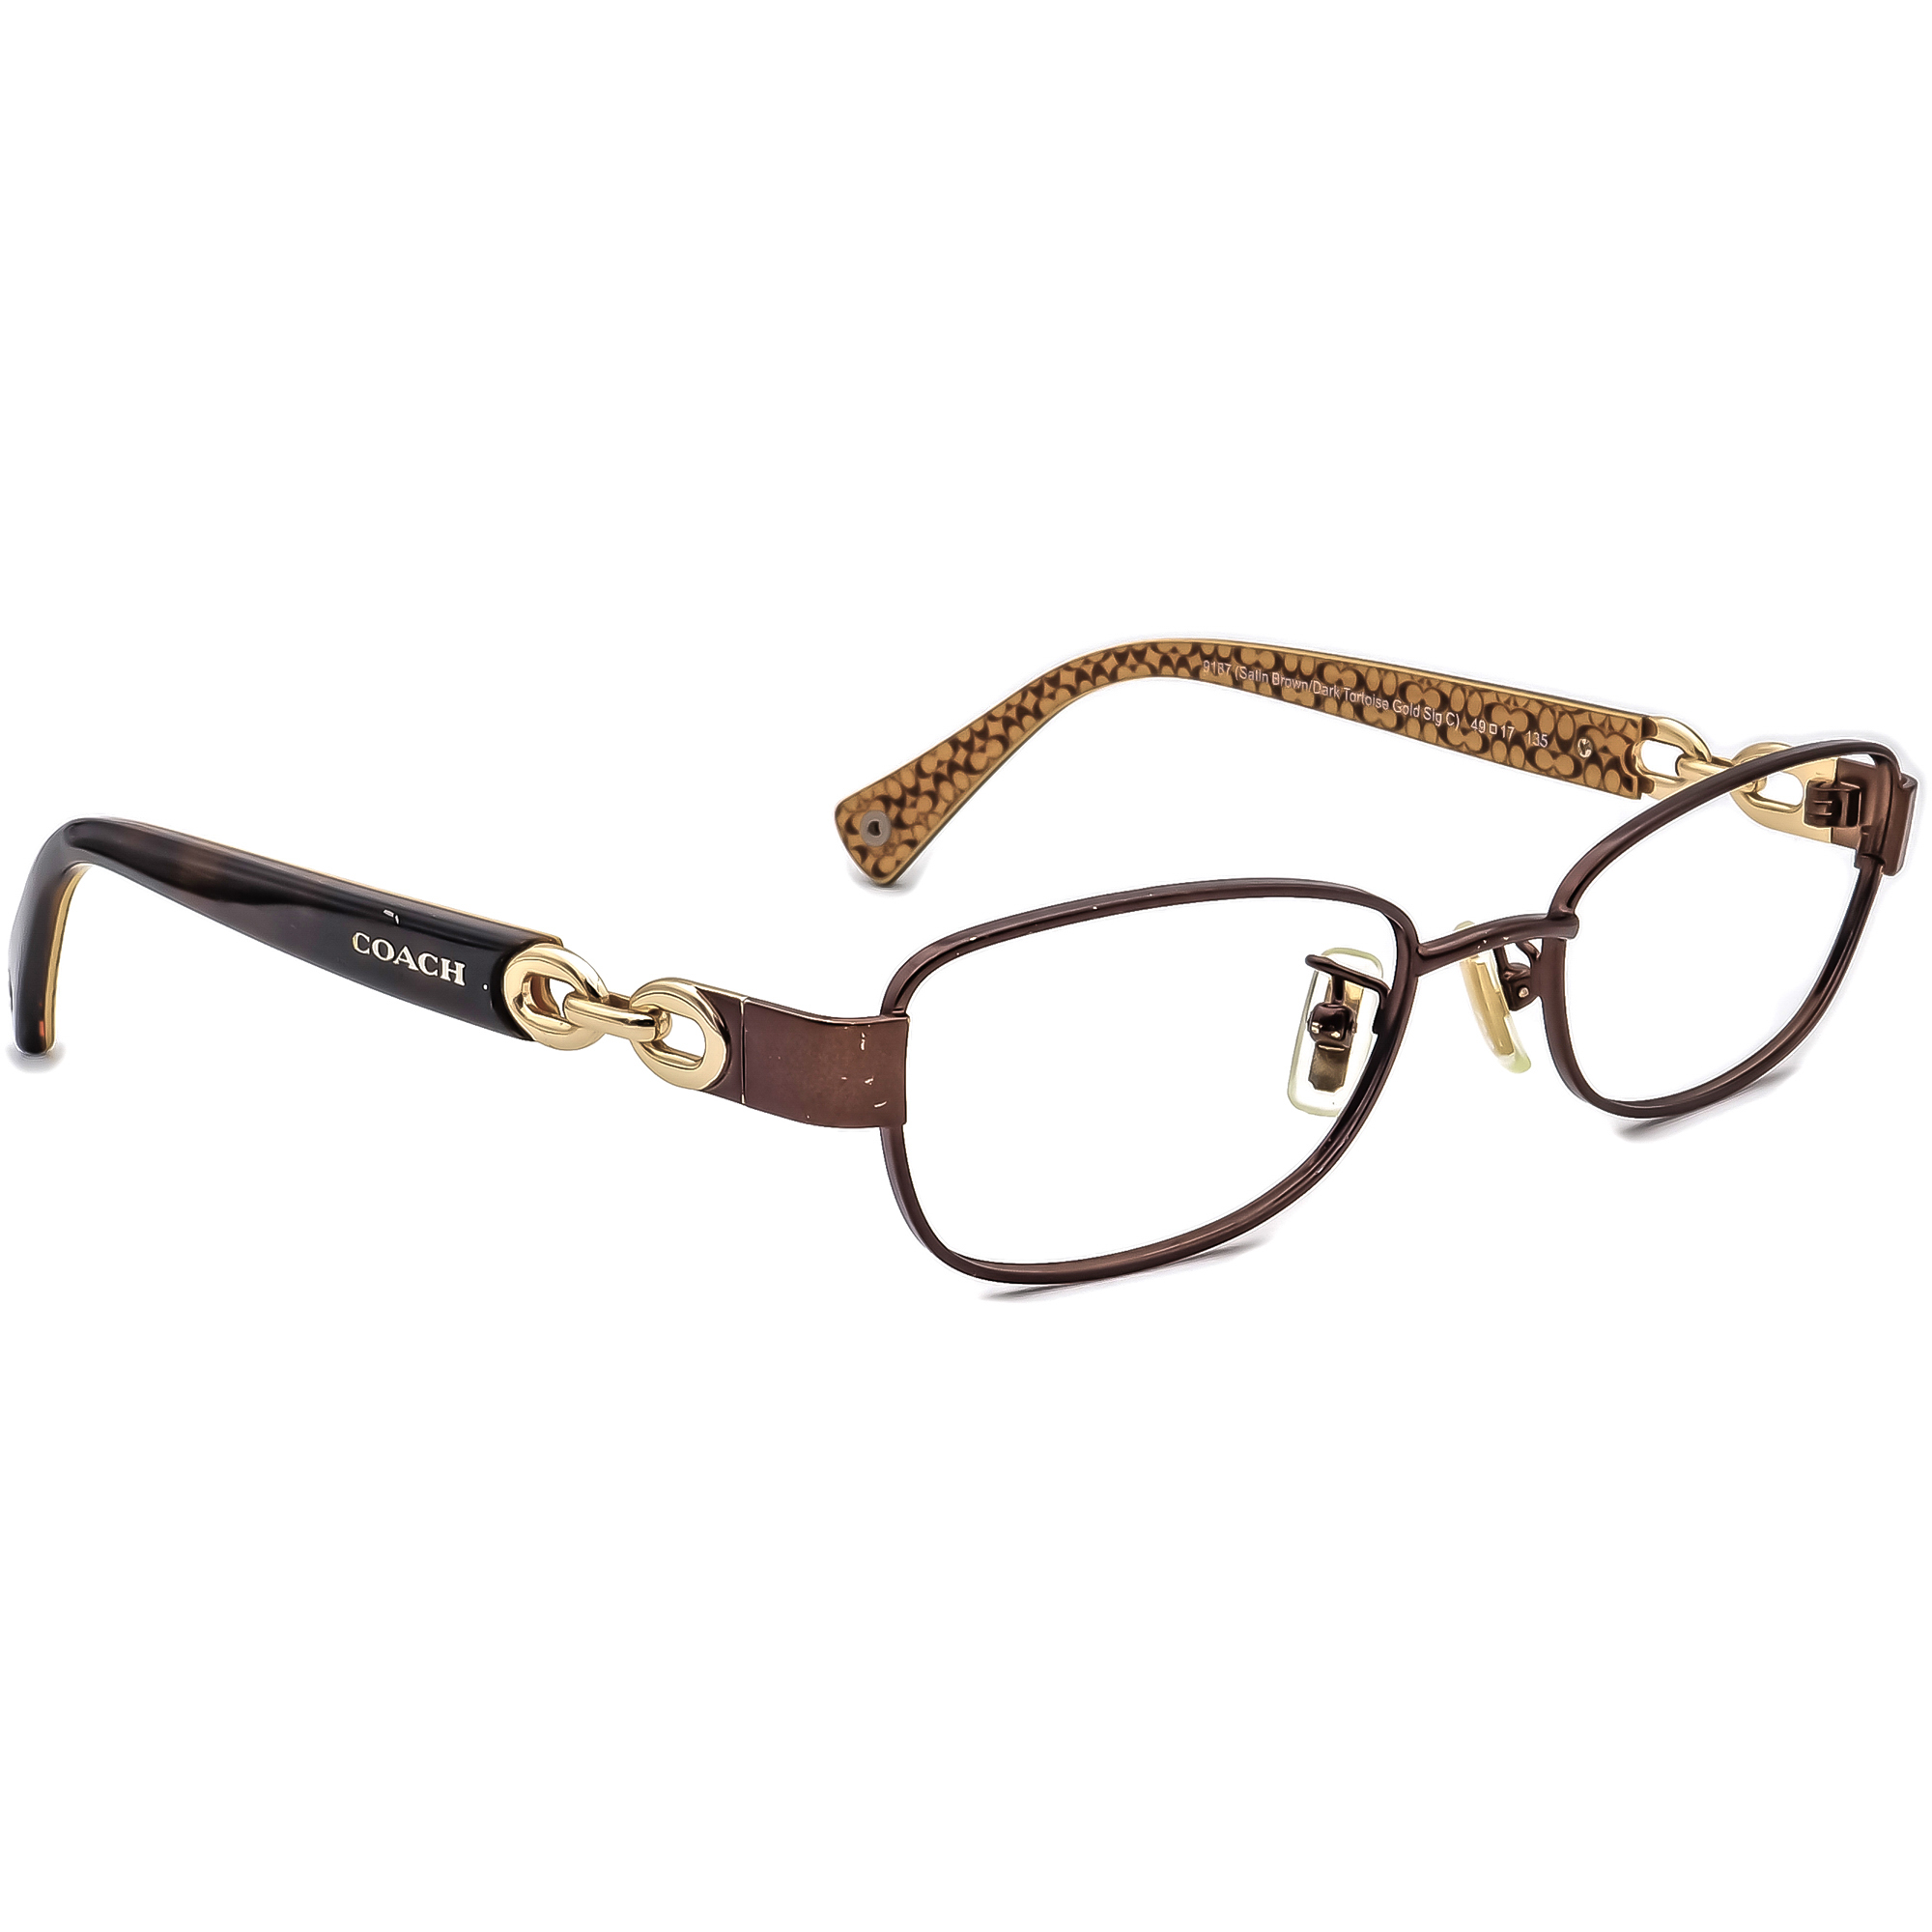 Coach HC 5054 (Faina) 9187 Eyeglasses